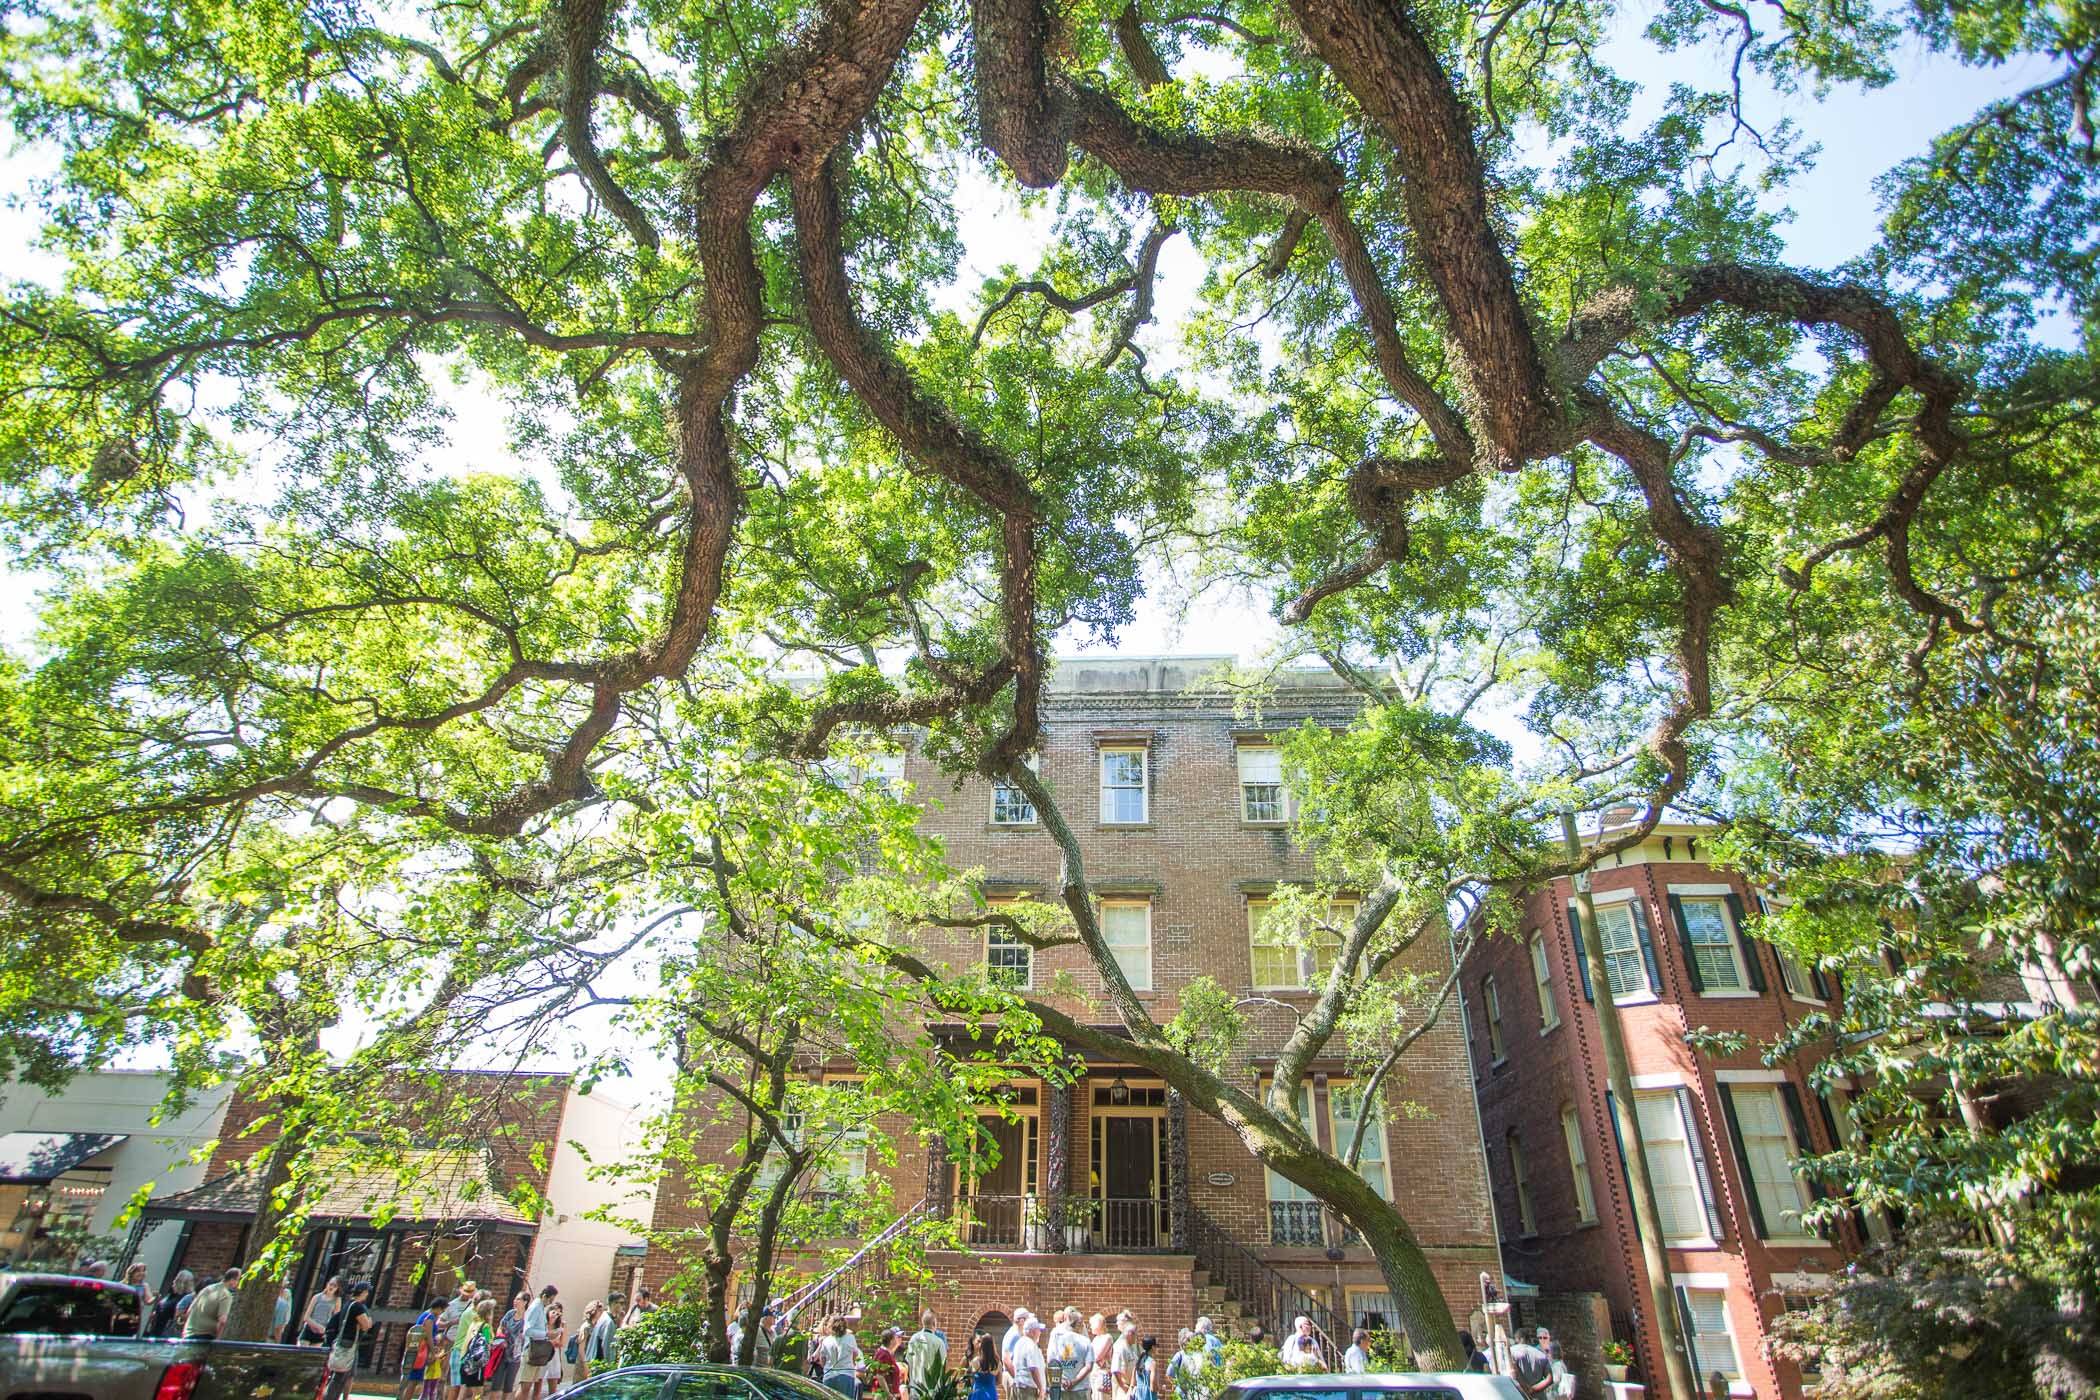 ©2018CapturingSavannah_Photography_Experiences_Sightseeing_Walking_Tours_Overview_IntroTo_Savannah_Georgia_trolley_discover_visit_see_www.capturingsavannha.com.jpg